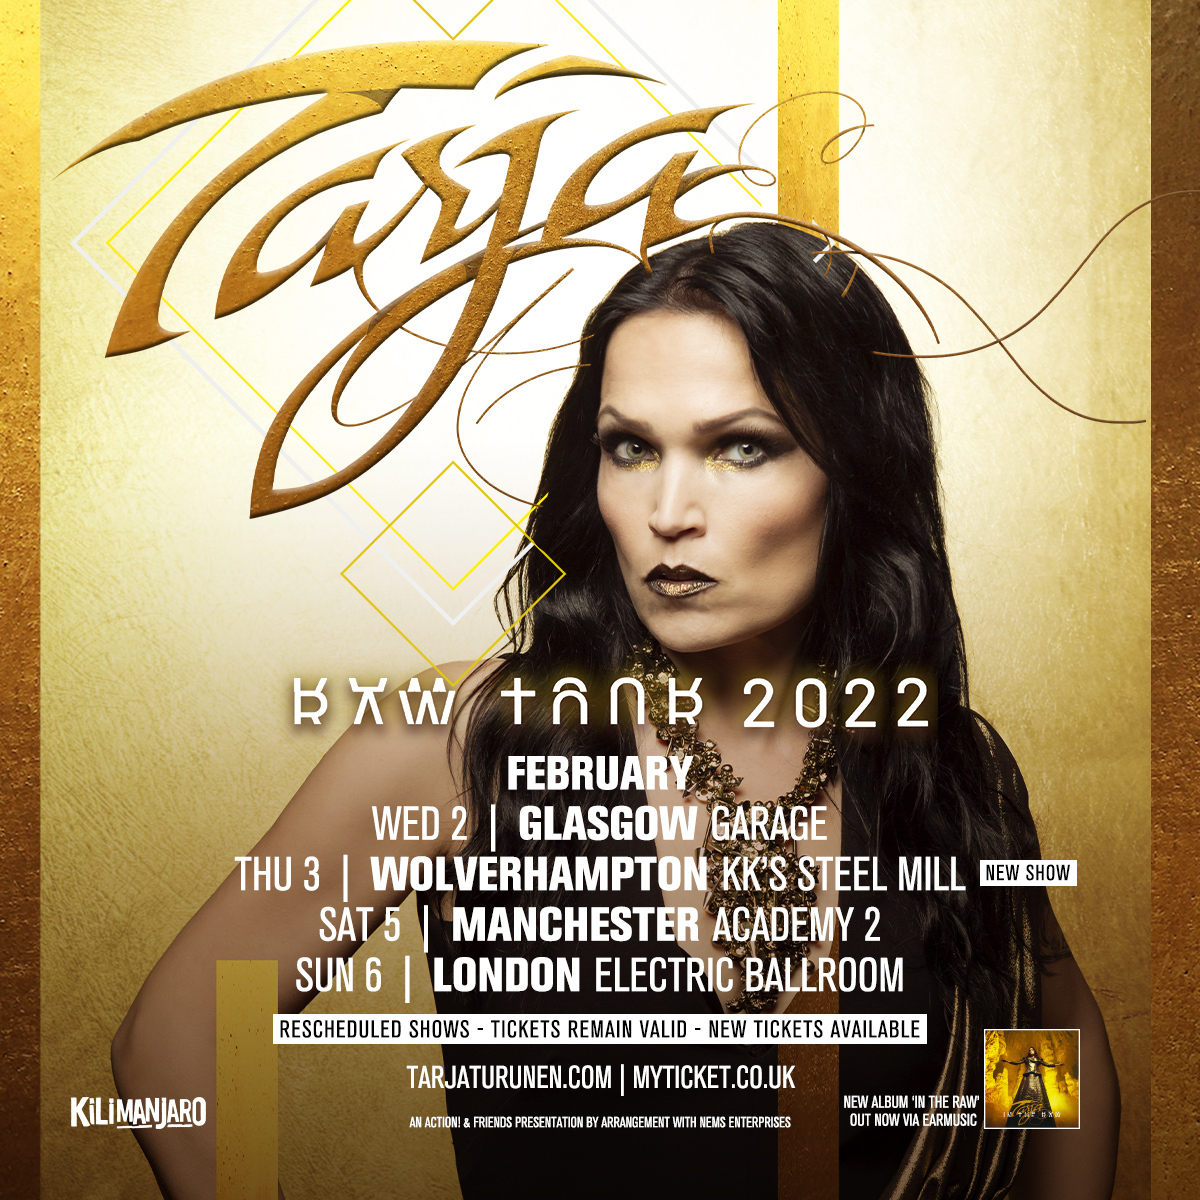 .@tarjaofficial rescheduled dates will take place in February 2022 + NEW SHOW added in #Wolverhampton! Remaining #GigTickets on sale now: https://t.co/CcCOVmBYFM https://t.co/W21oqTbocl